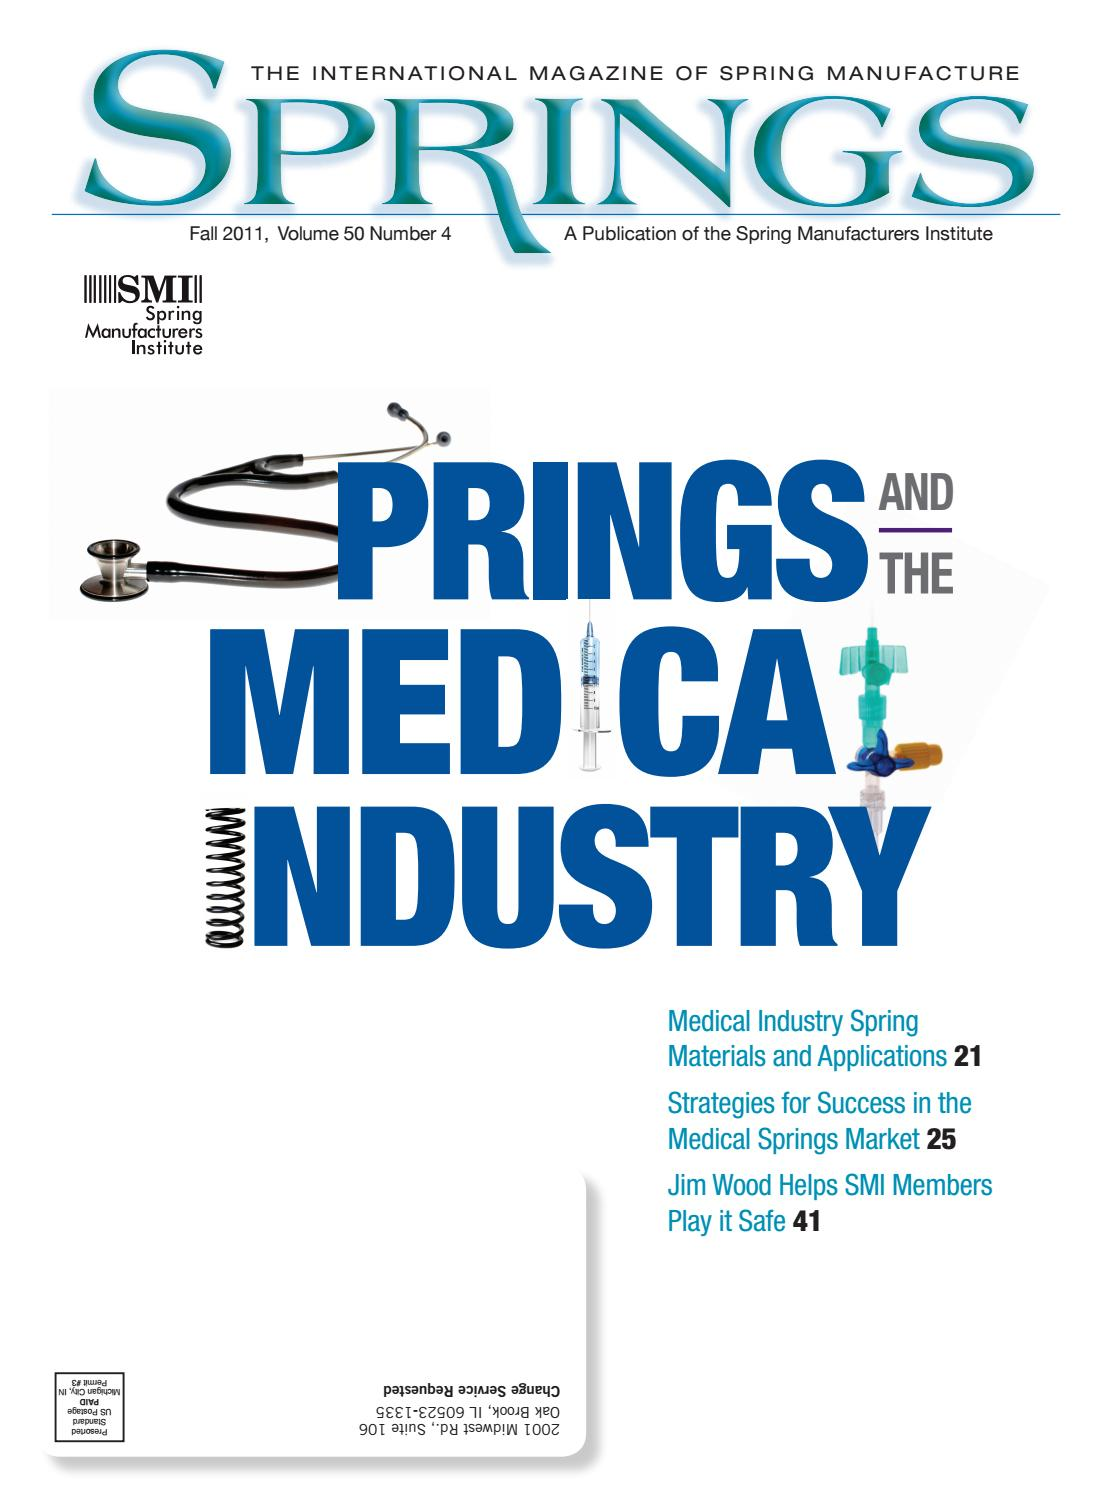 Springs fall 2011 vol 50 no4 by Spring Manufacturers Institute - issuu